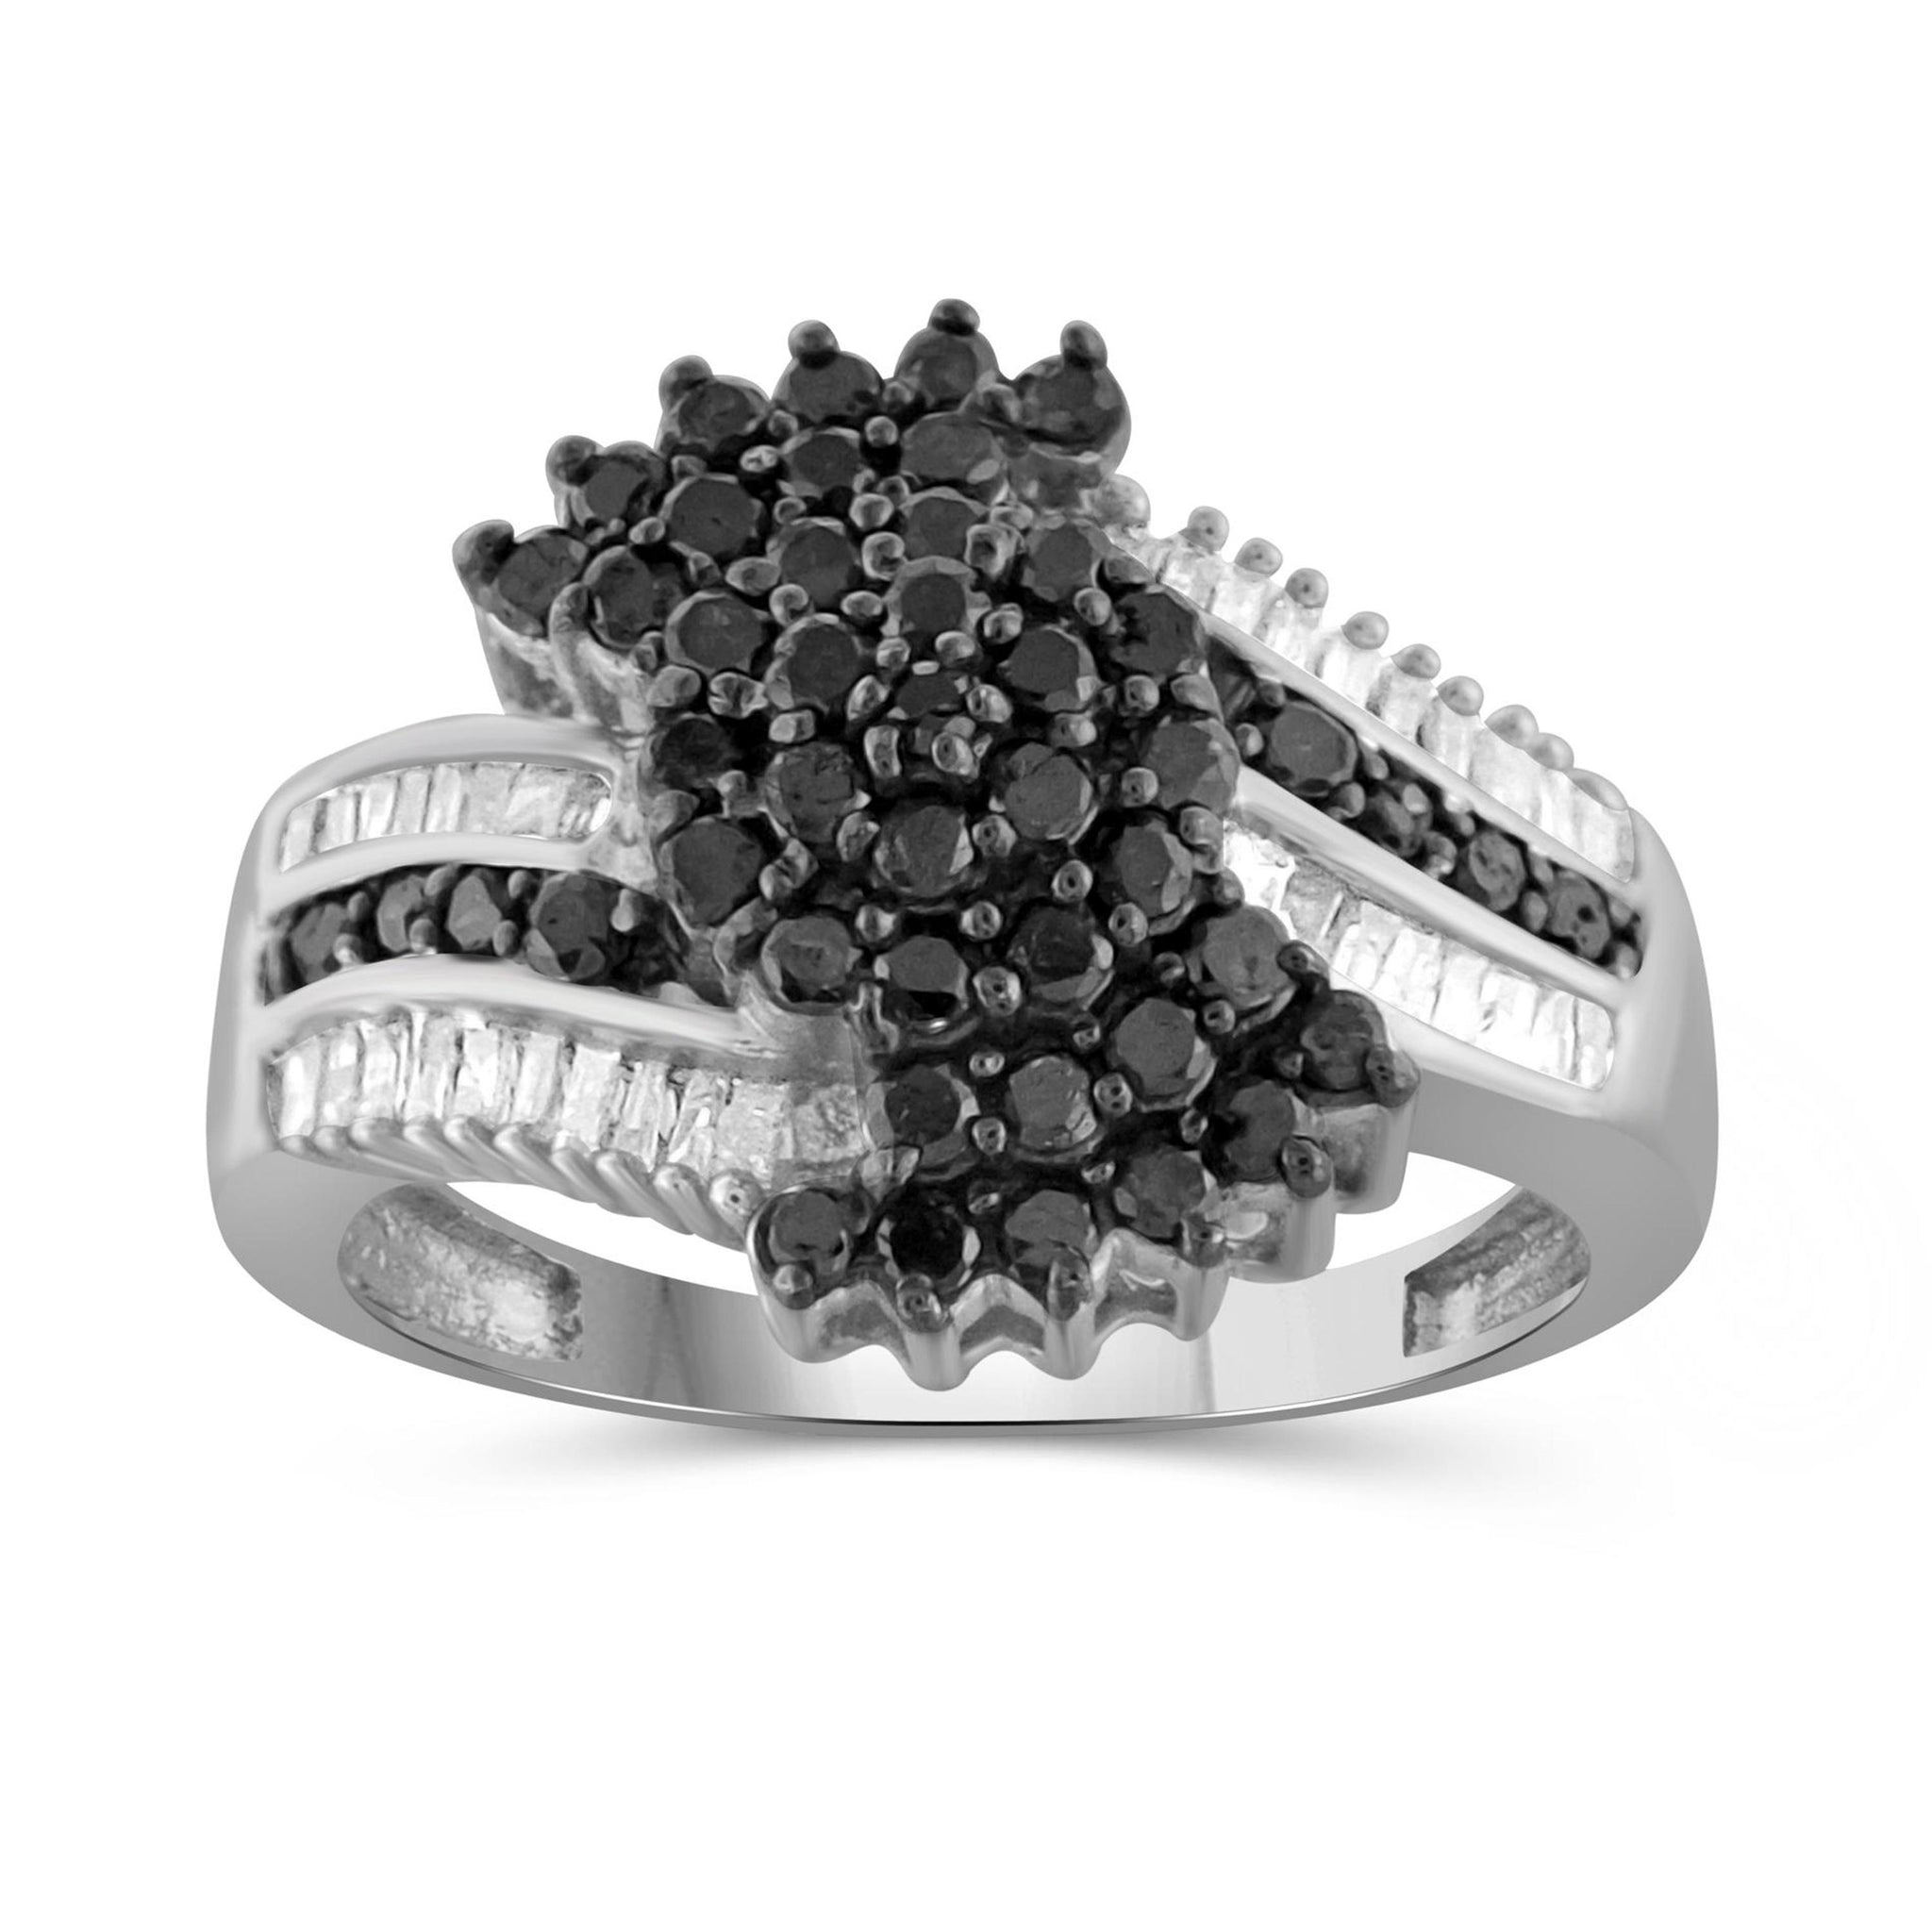 JewelersClub 1 Carat T.W. Black And White Diamond Sterling Silver Ring